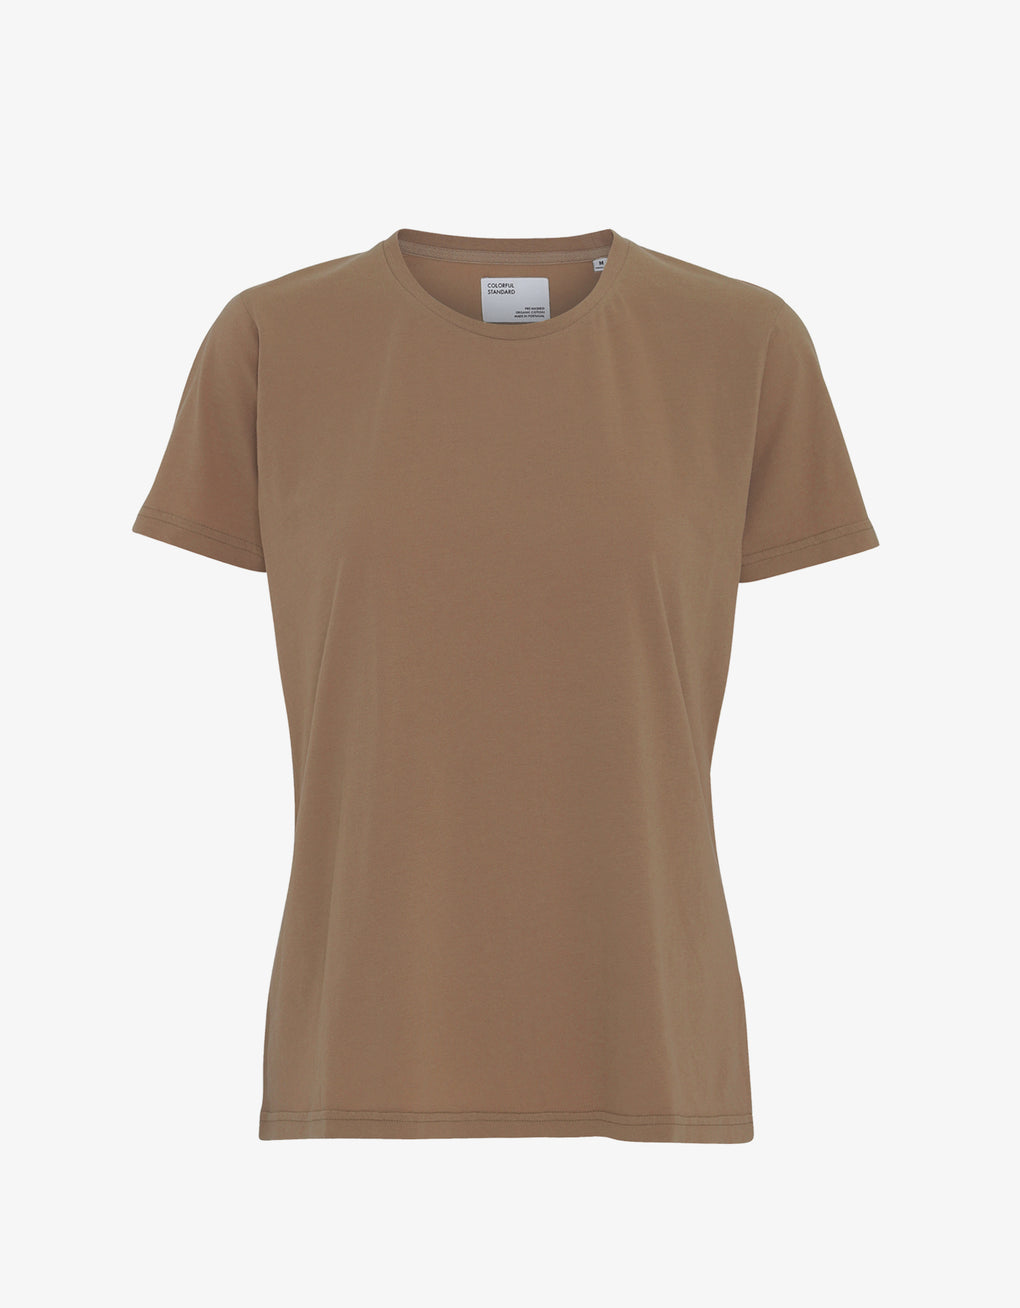 Colorful Standard Women Light Organic Tee Women T-shirt Sahara Camel